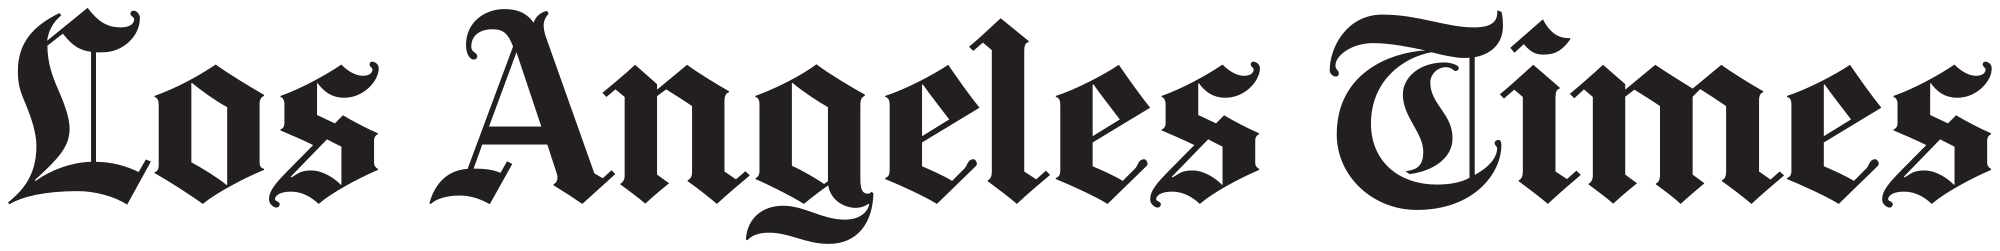 los angeles times logo horizontal.png